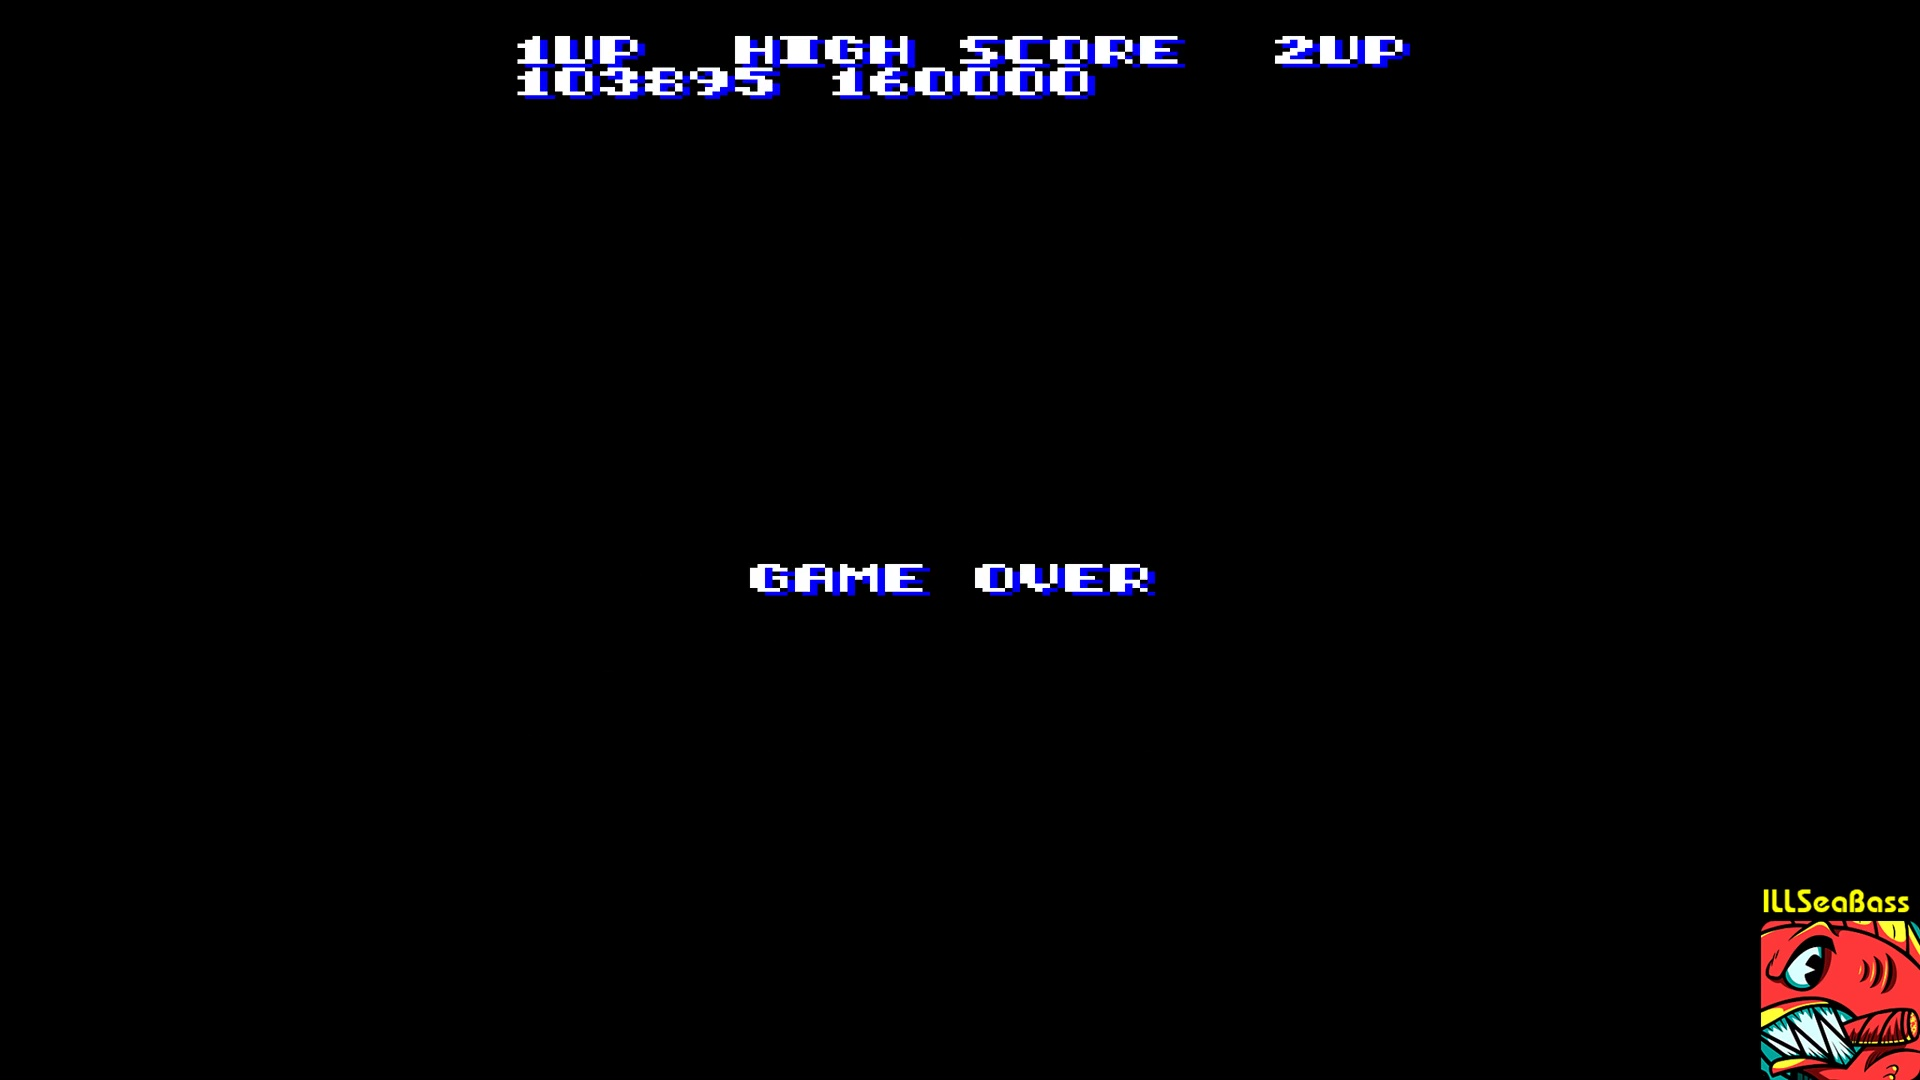 ILLSeaBass: Arkanoid (Amstrad CPC Emulated) 103,895 points on 2017-11-08 08:36:13